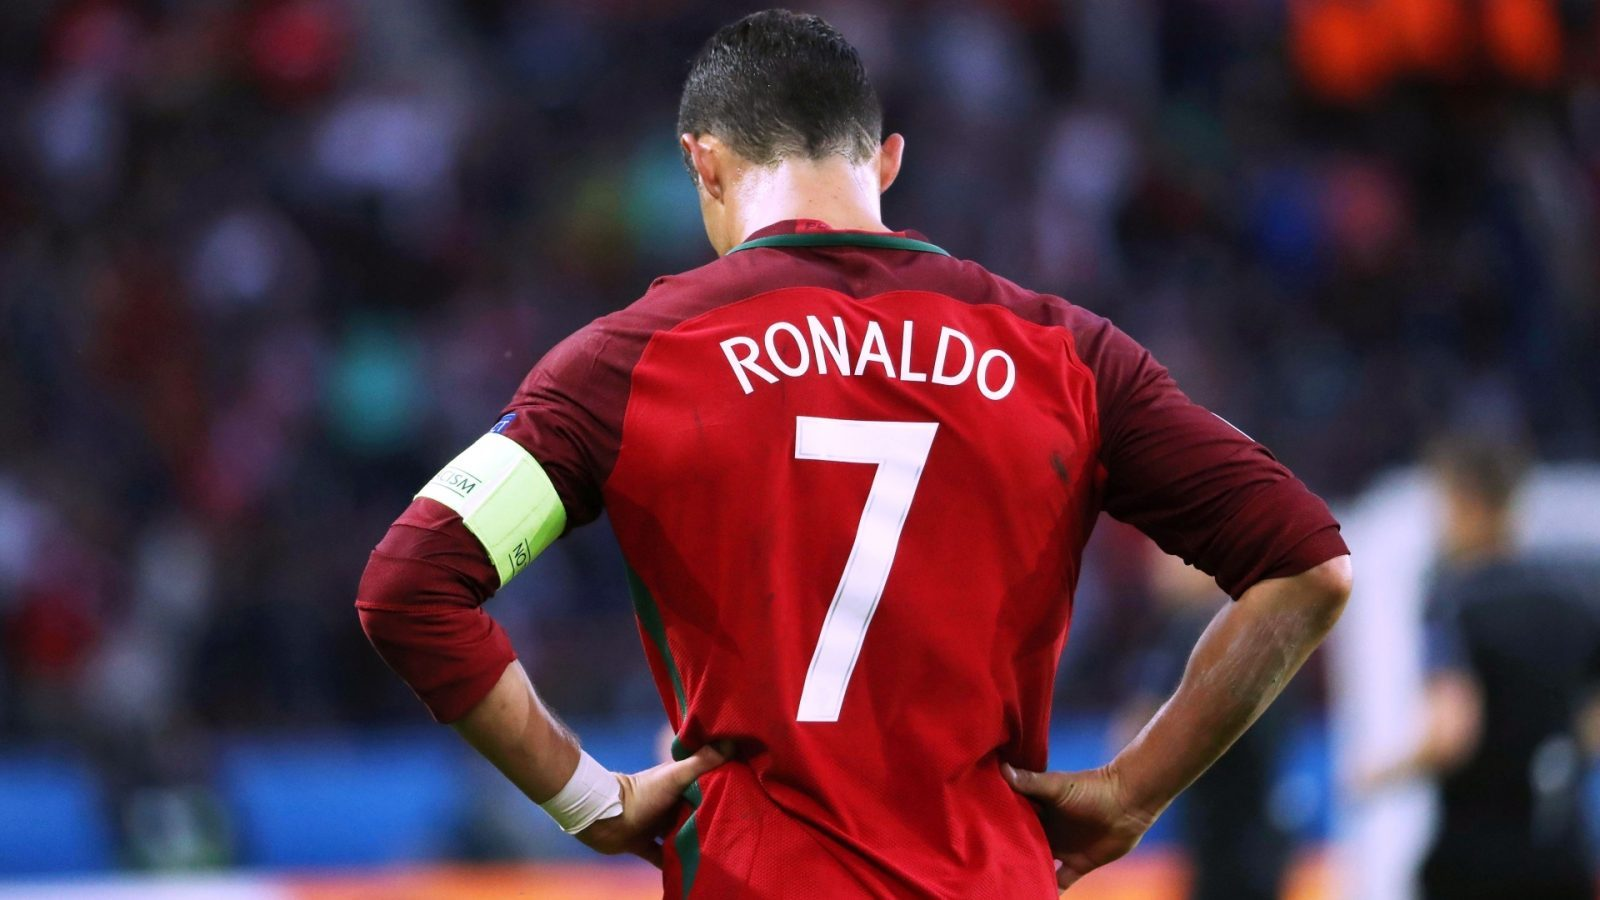 Cristiano Ronaldo pictures with cr7 jersey backside image